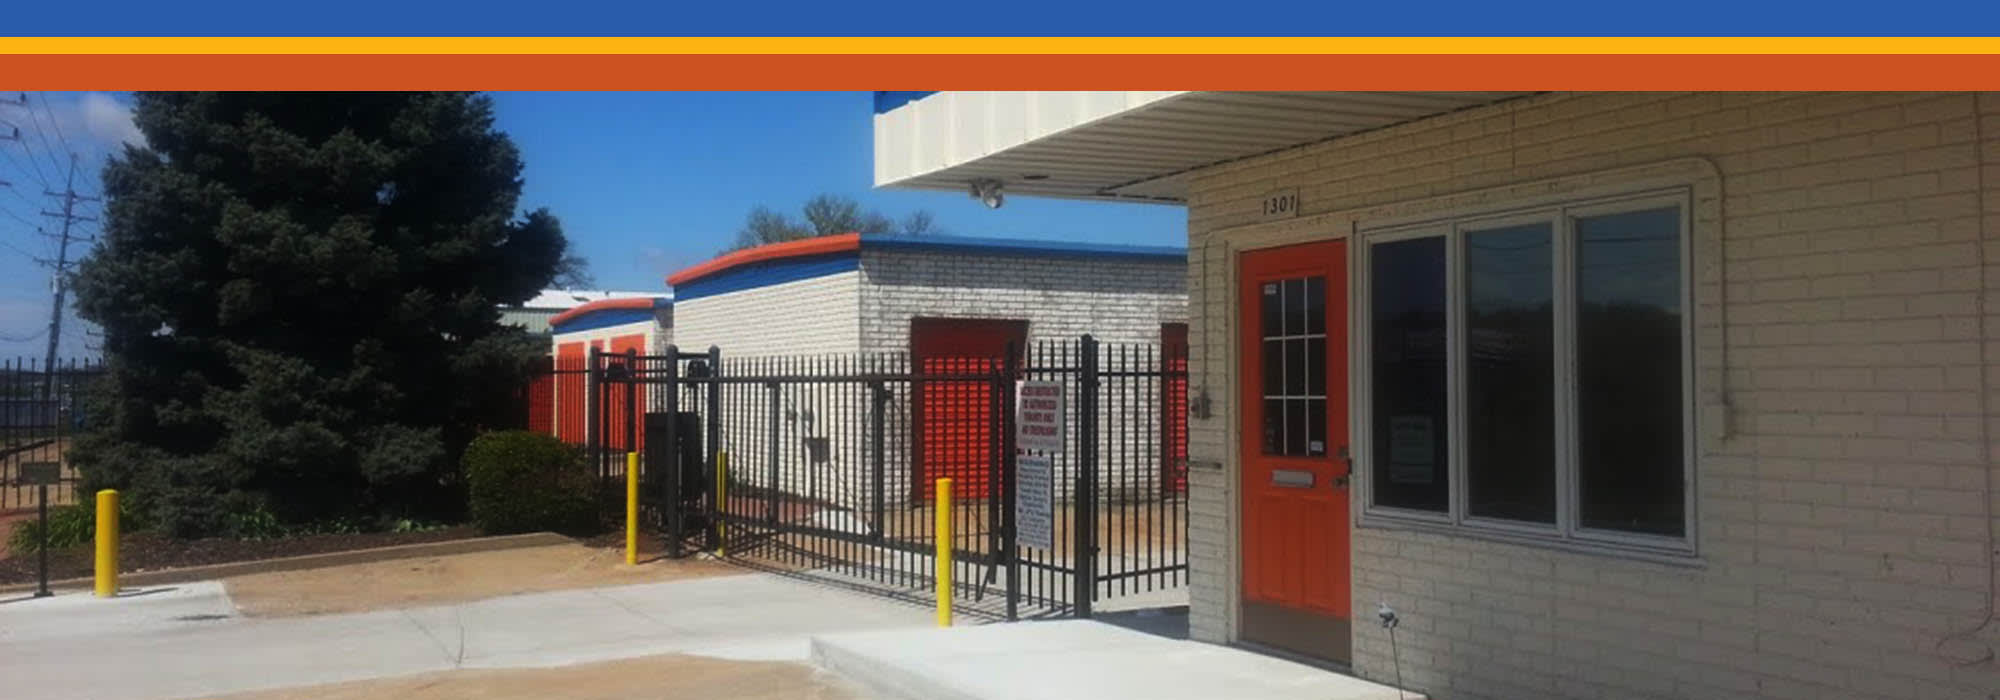 Self storage in St. Louis MO